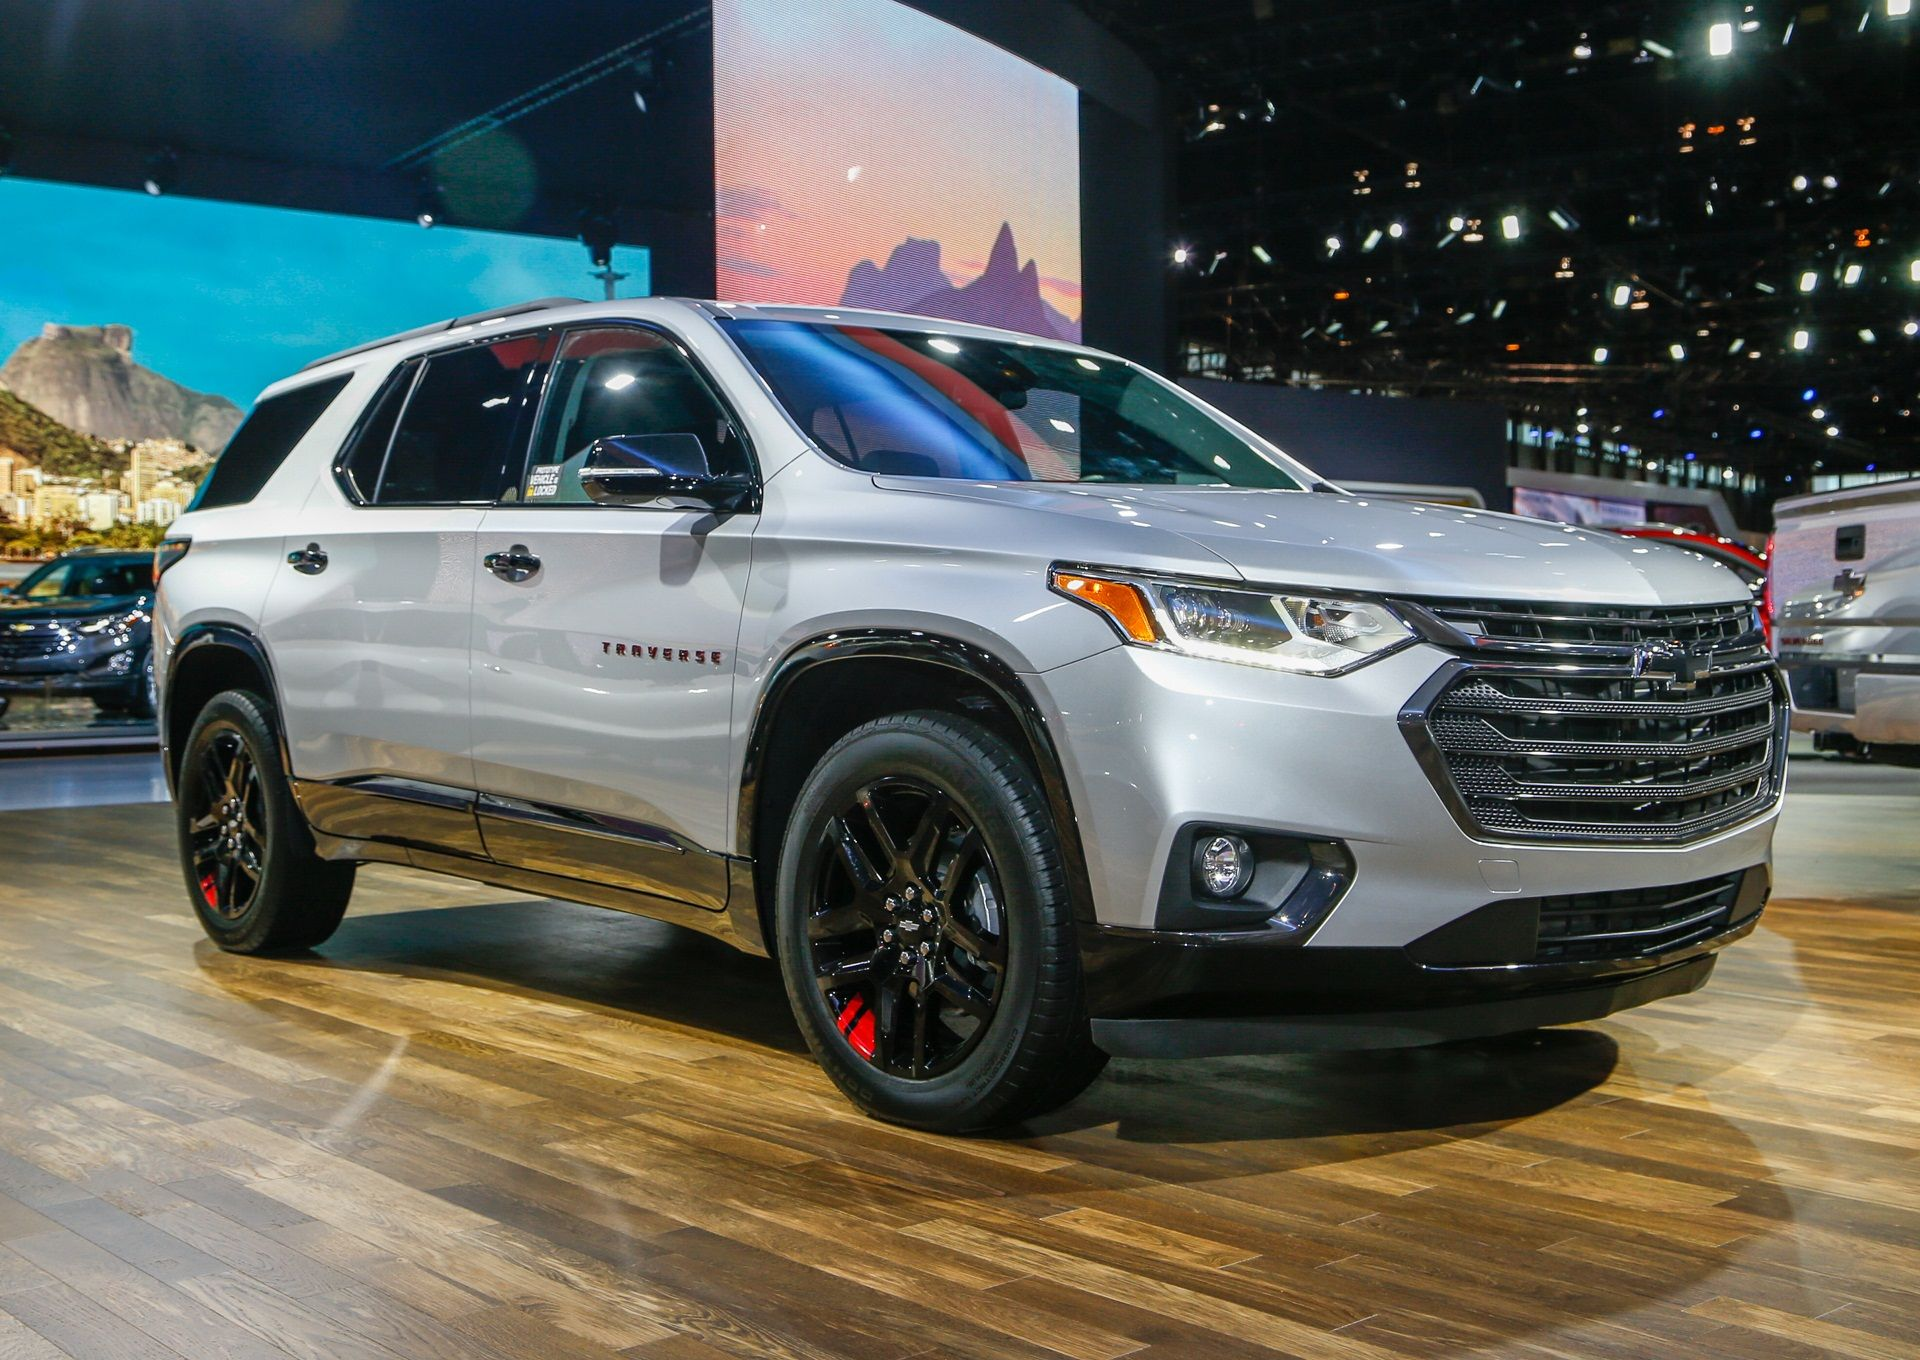 2020 Chevrolet Traverse Release Date And Changes 2019 2020 Find Design 2018 Chevy Traverse Release Date Chevrolet Traverse Chevrolet Best Midsize Suv